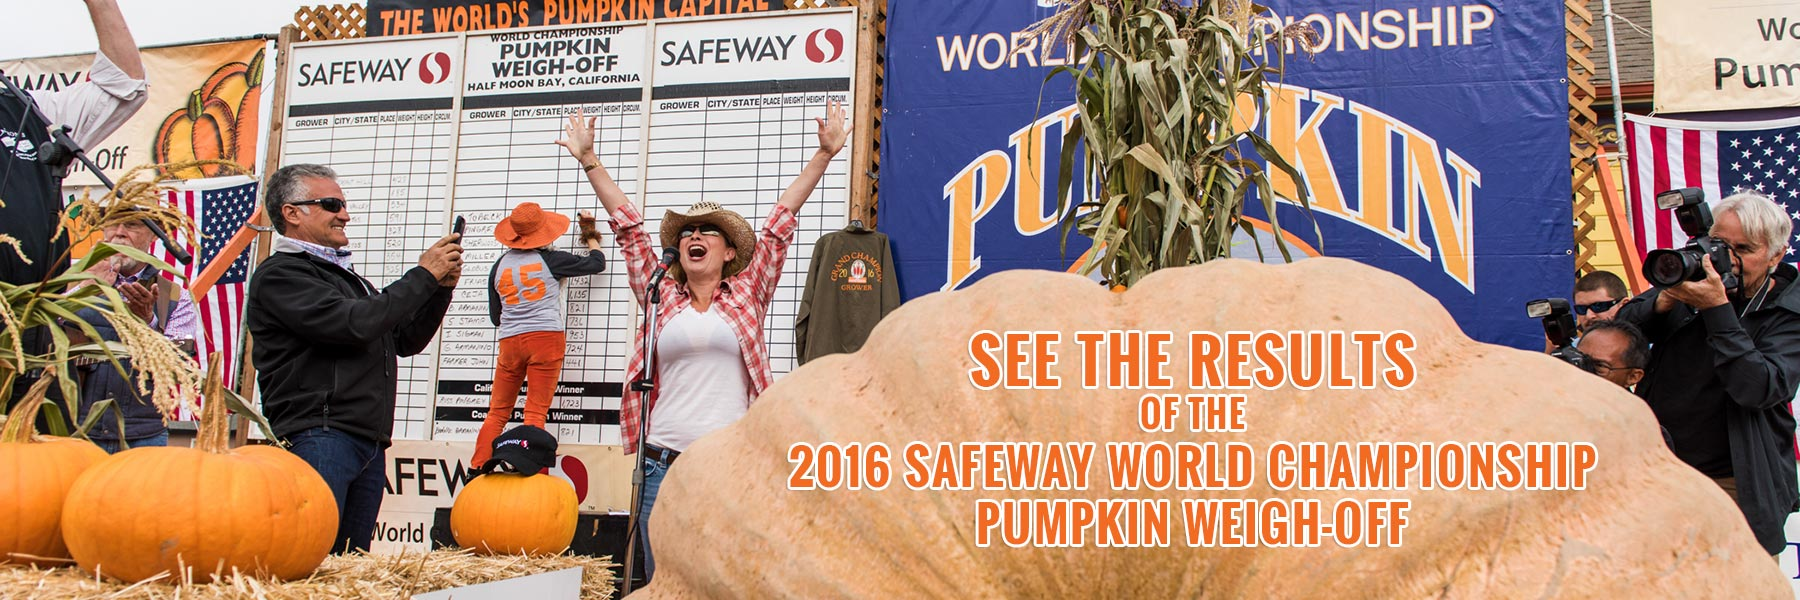 See the results of the 2016 Safeway World Championship Pumpkin Weigh-Off